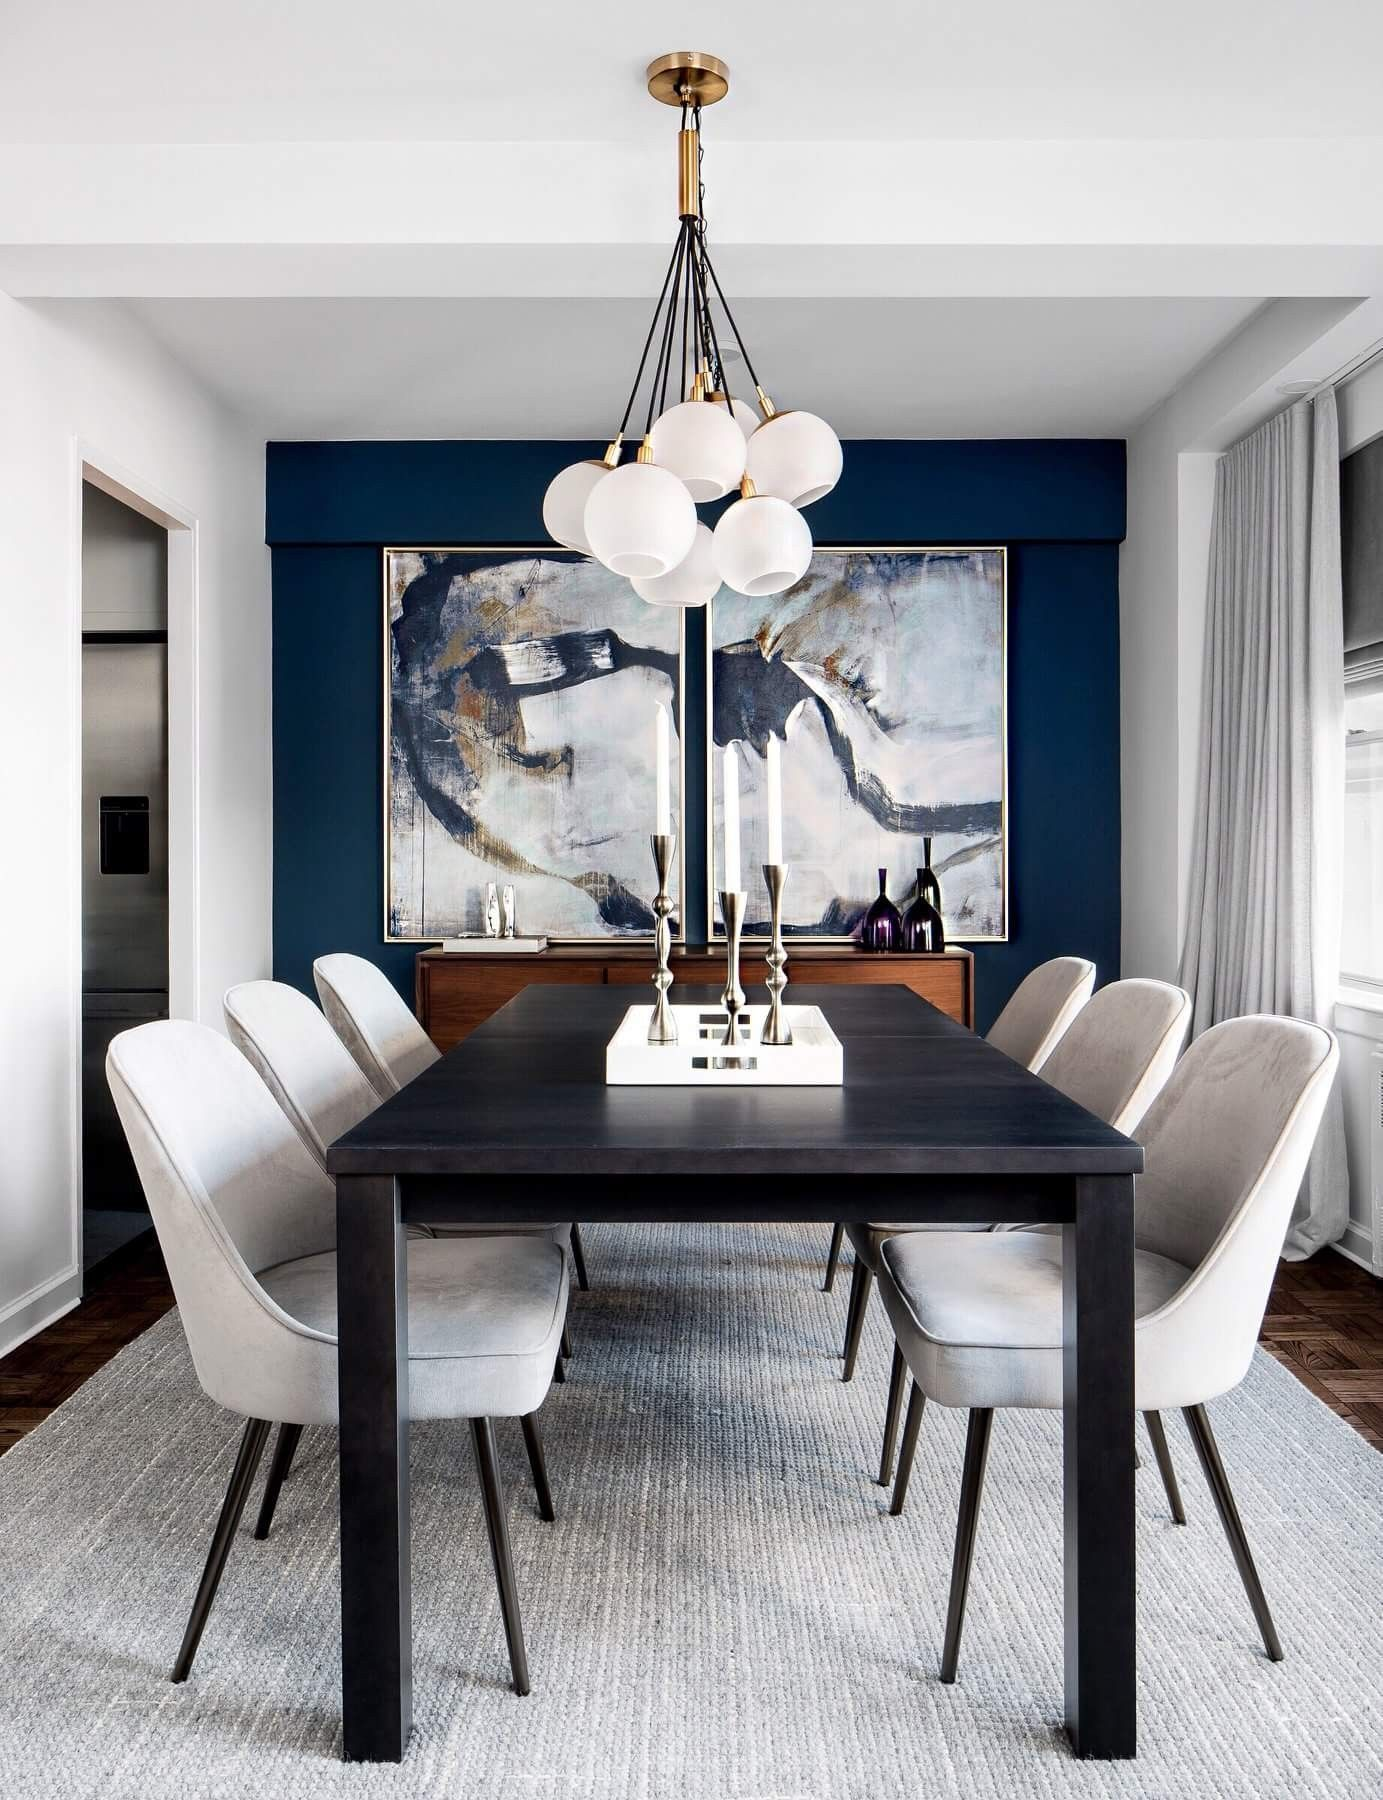 How To Bring Mid Century To Your House With Our Dining Room Ideas